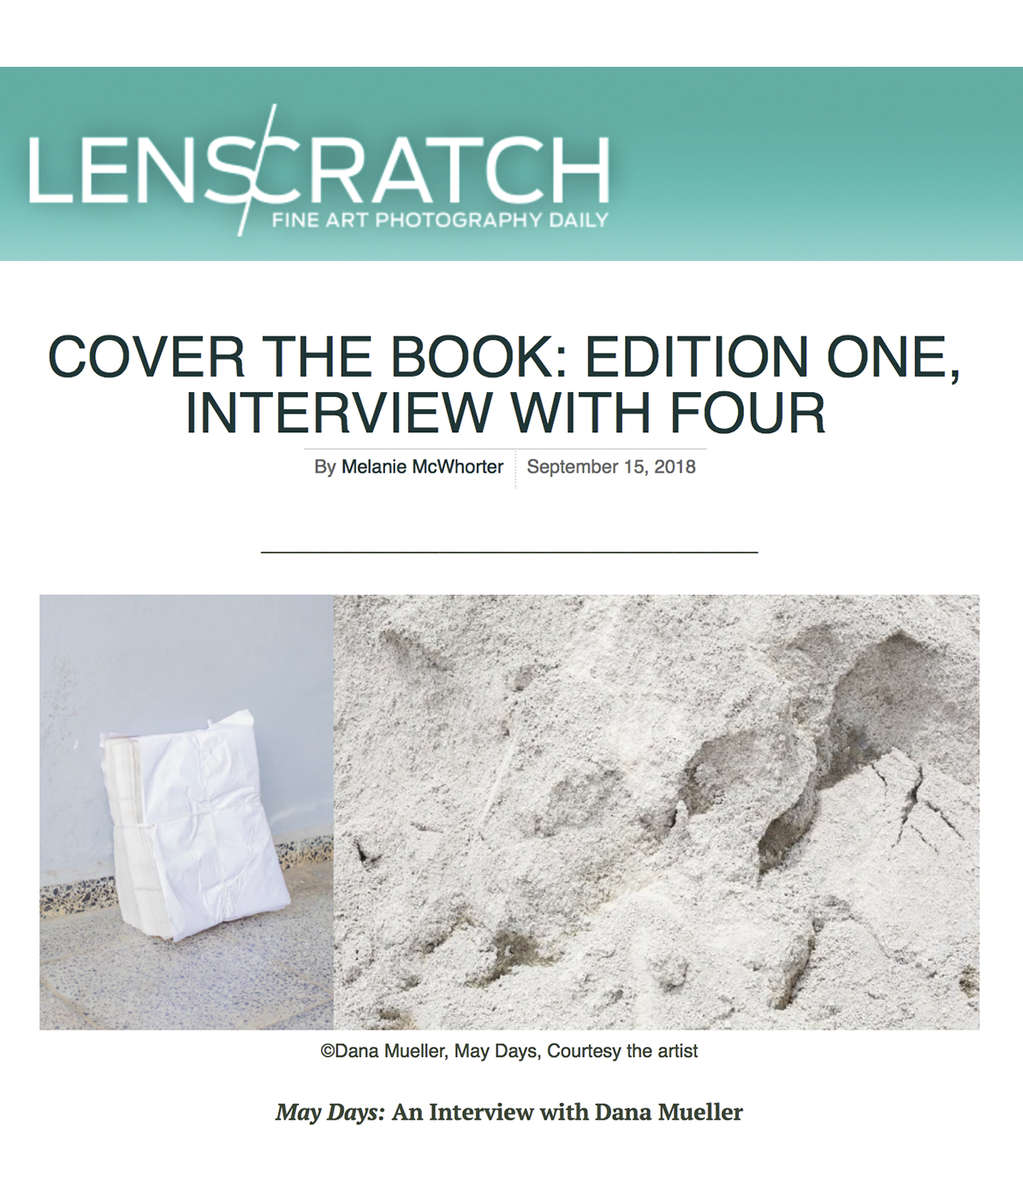 Cover the Book: Edition One, Interview with Four By Melanie McWorther